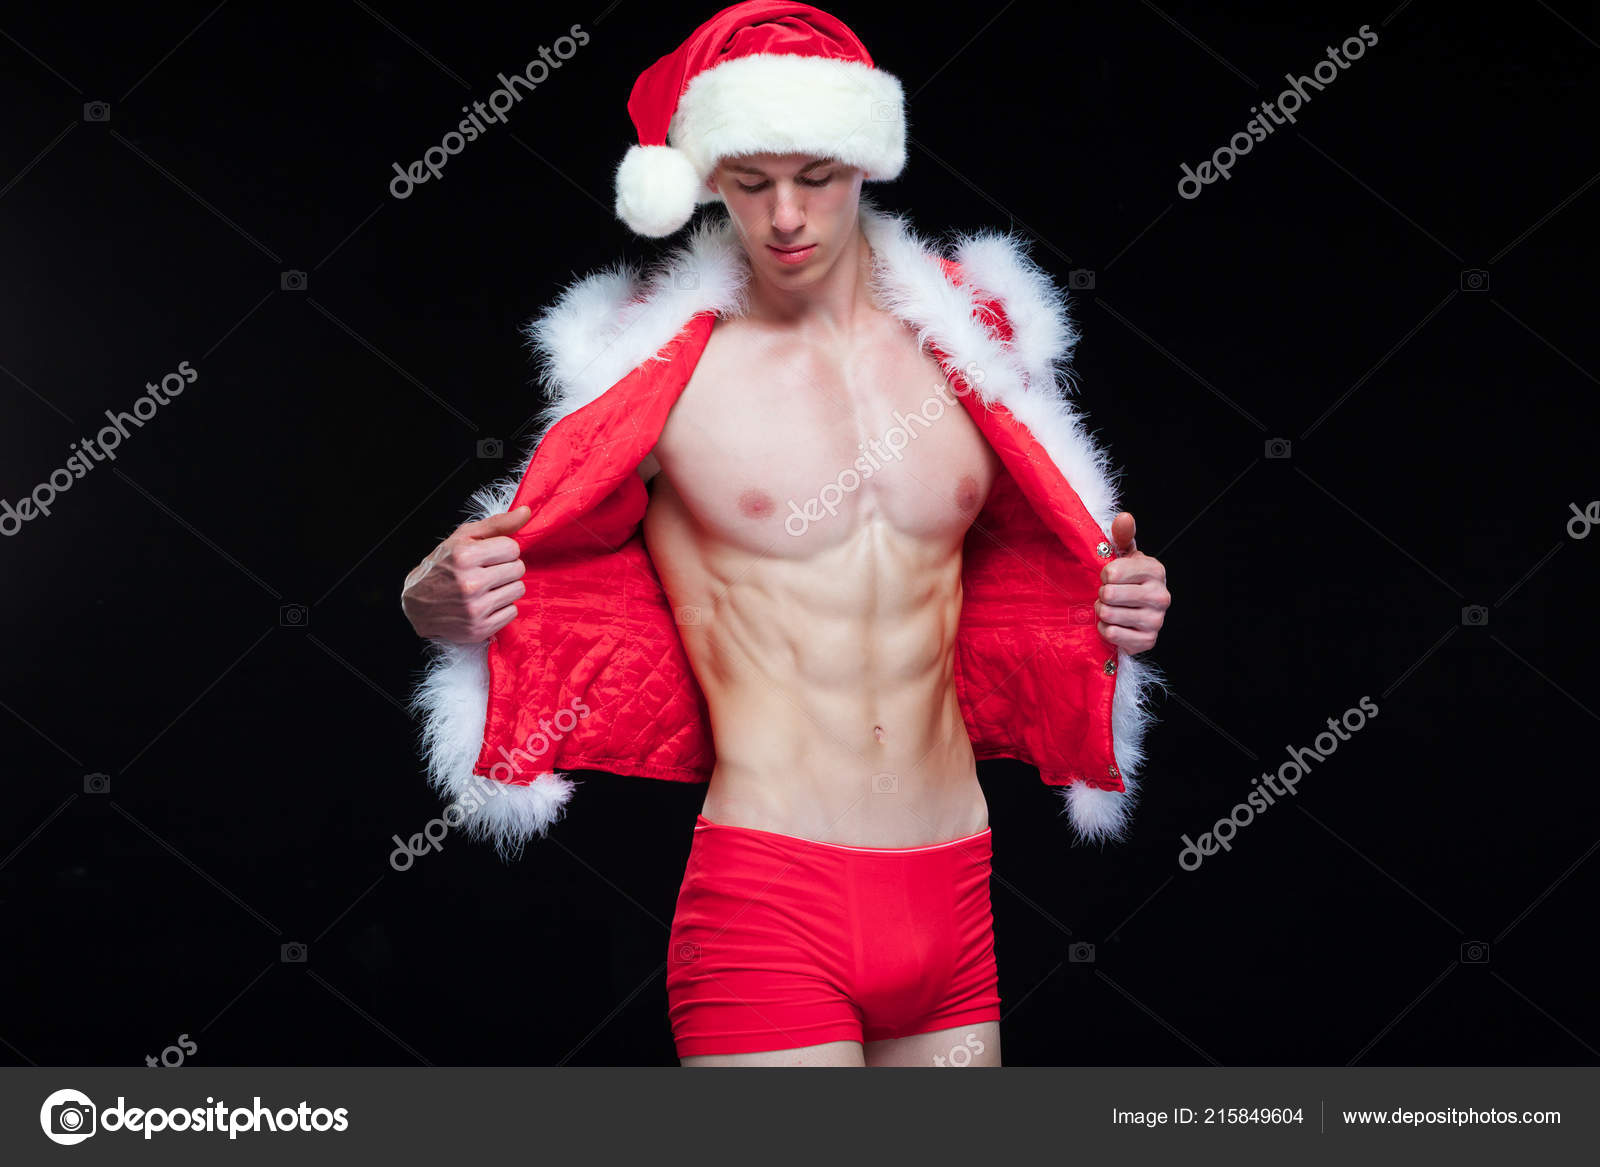 09e94812a7d43 Sexy Santa Claus . Young muscular man wearing Santa Claus hat demonstrate  his muscles. Isolated